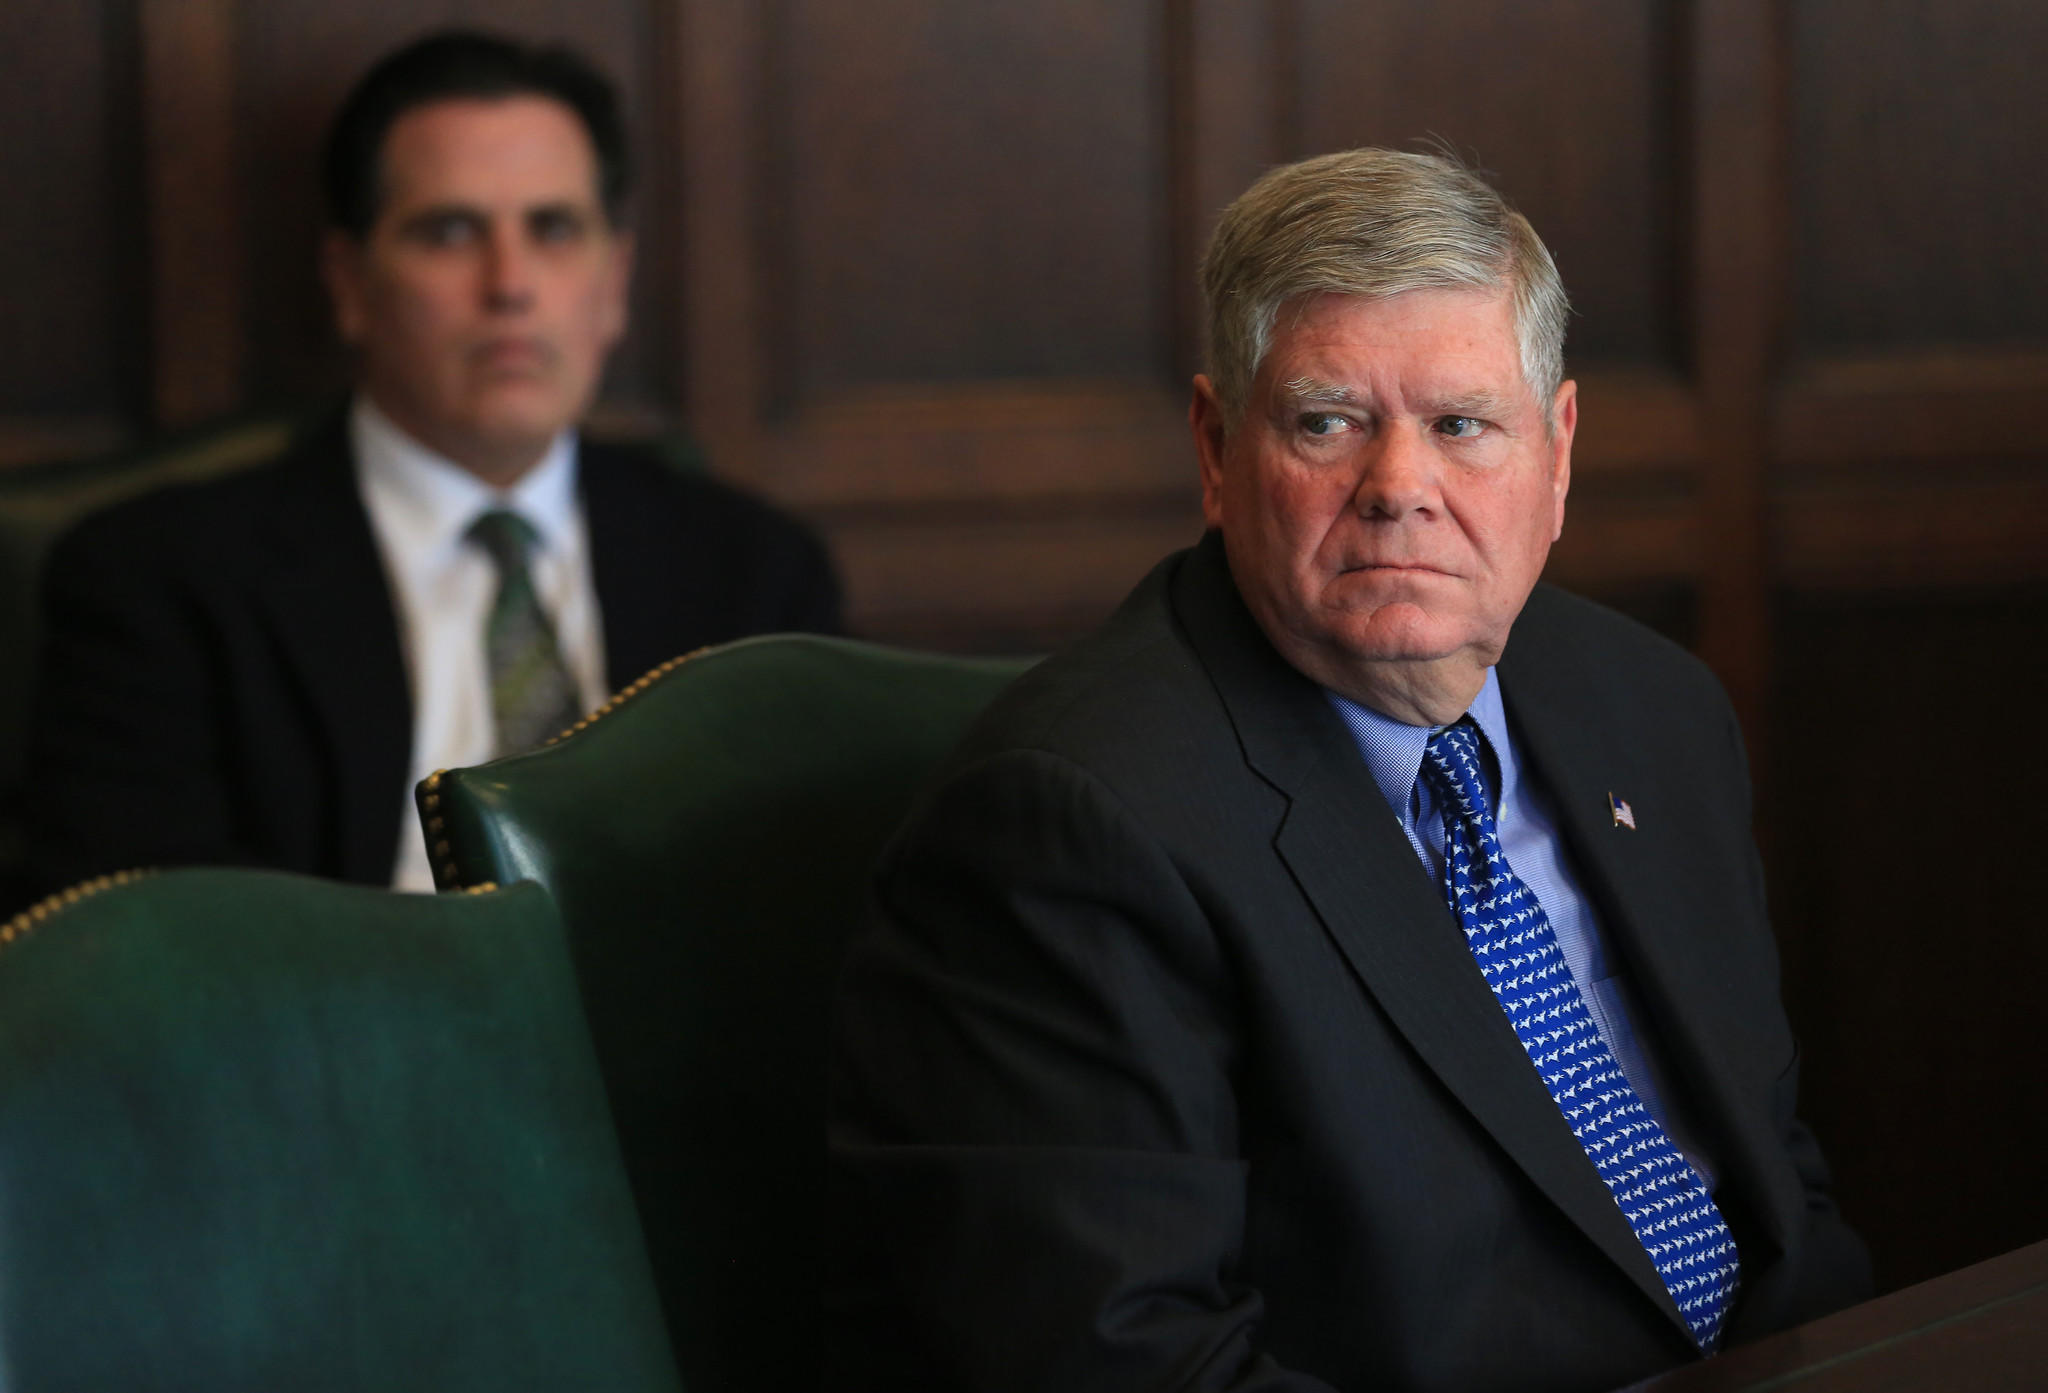 State Sen. Jim Oberweis, Republican, candidate for the U.S. Senate, meets with the Editorial Board in Chicago on Feb. 10.